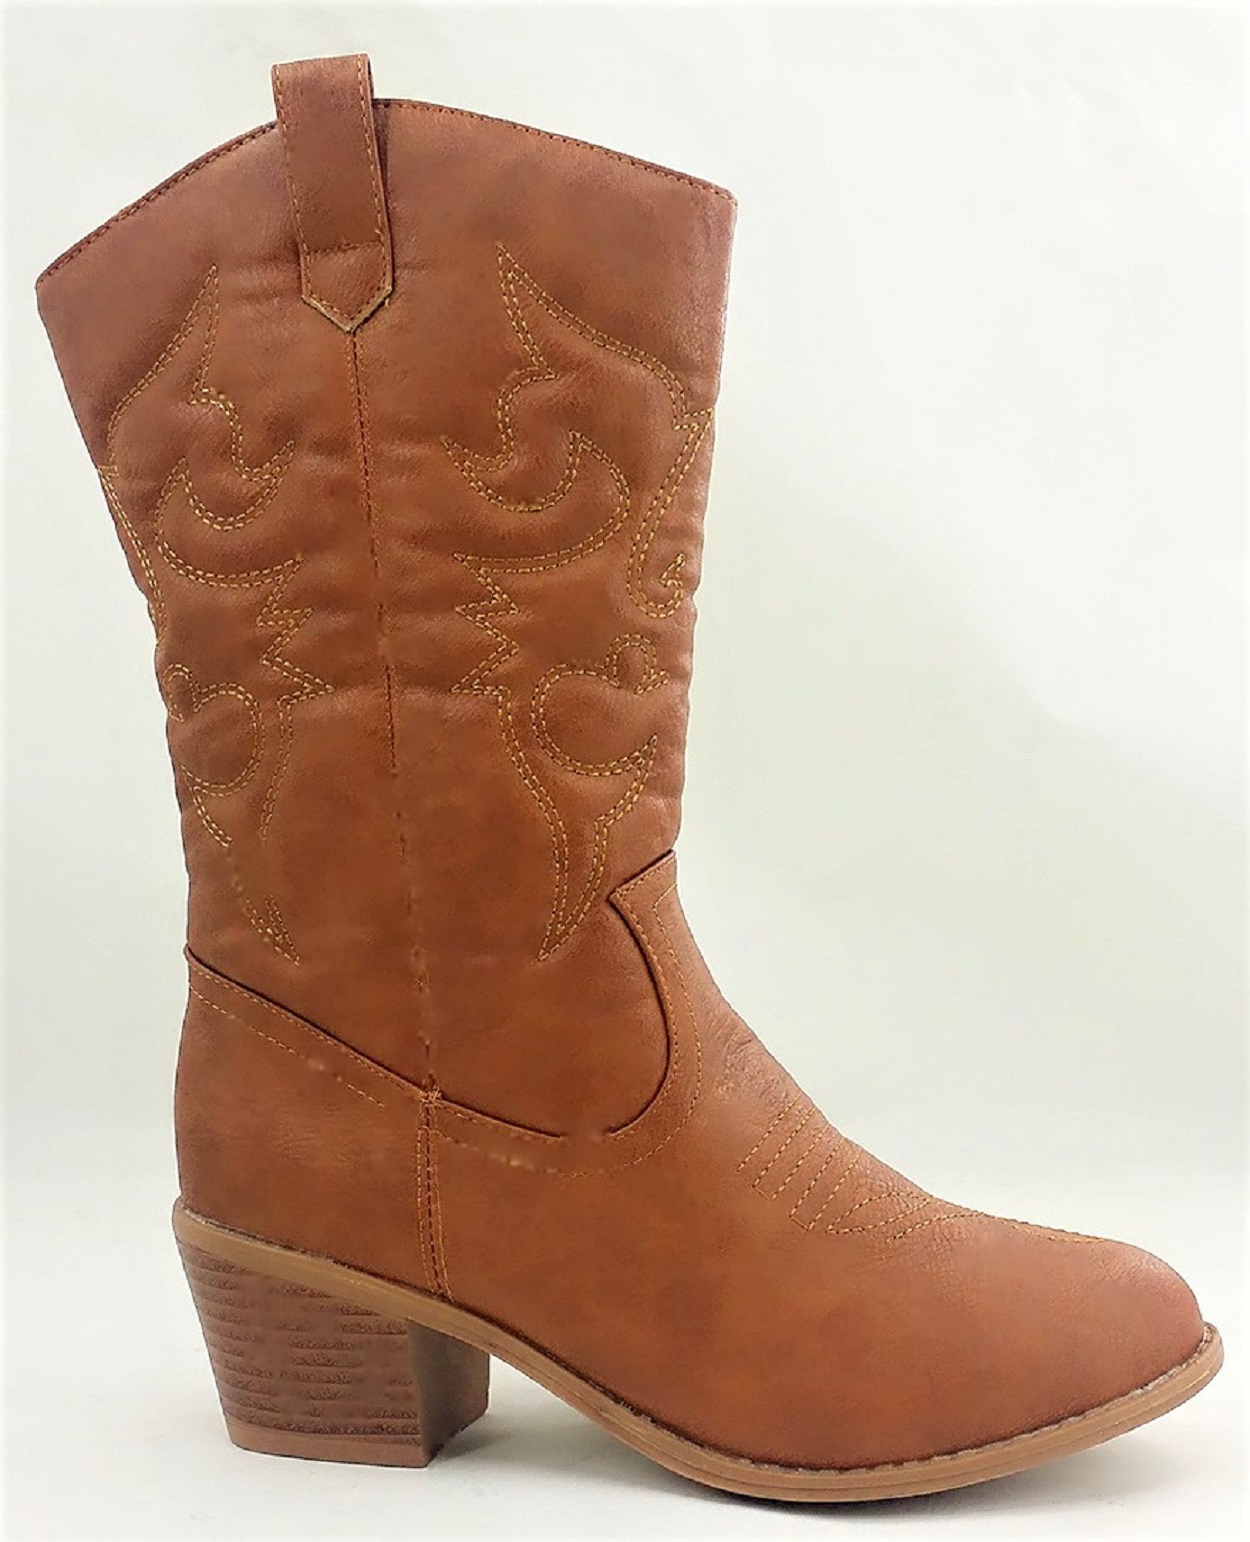 BDW-14W Western Cowboy Cowgirl Mid Calf Pointed Toe Stitched Boots Tan